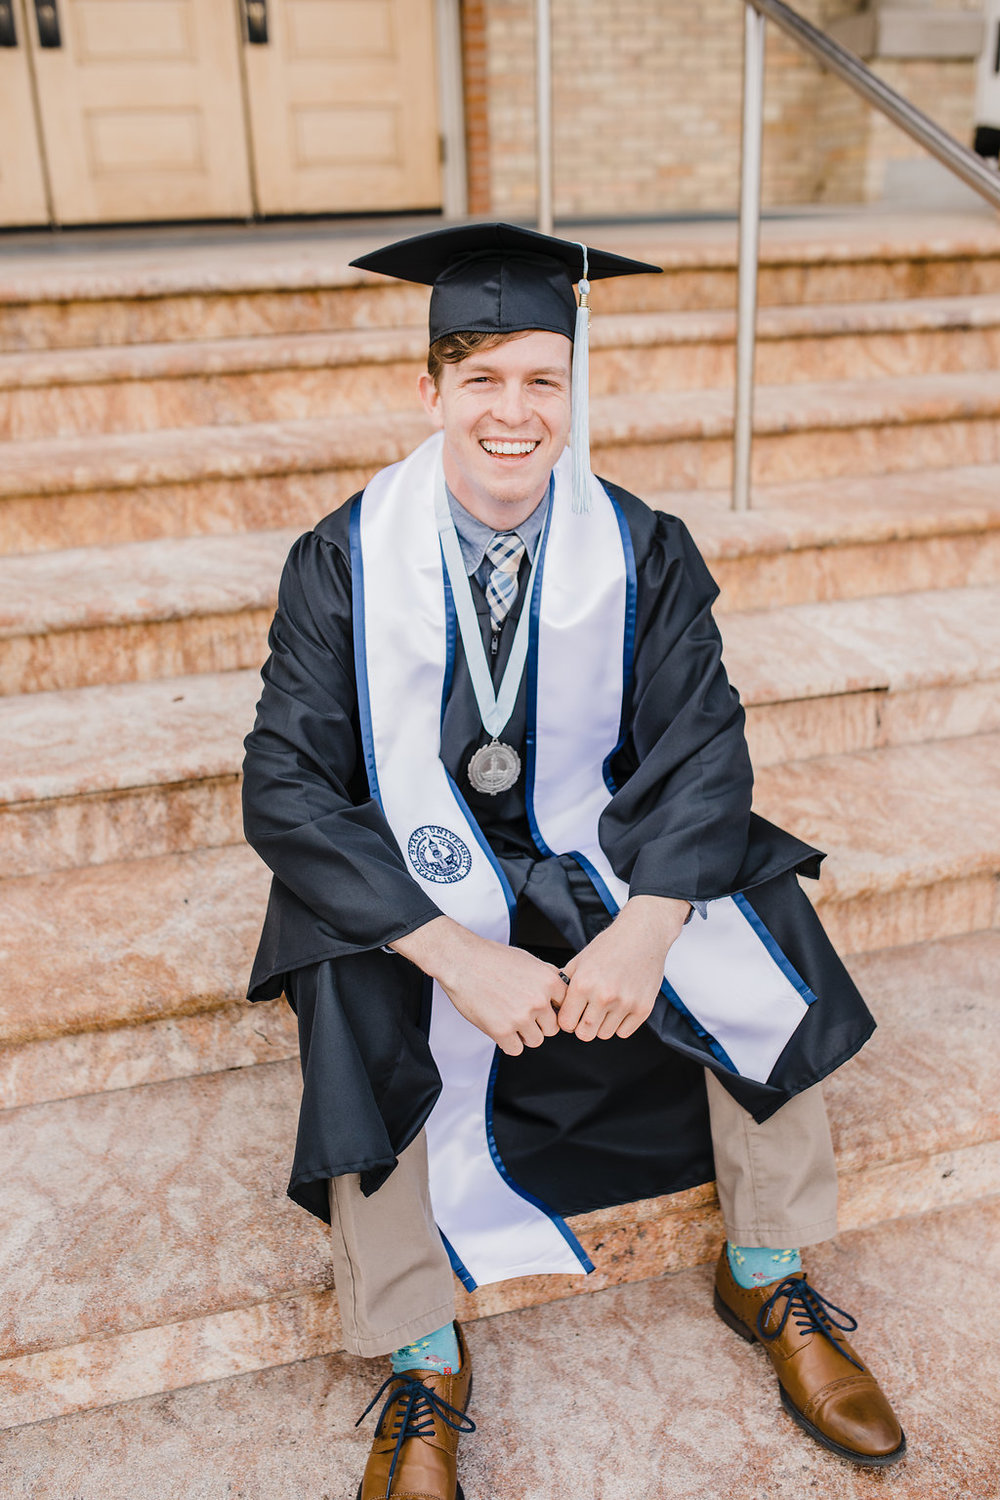 senior photos graduation photography photo shoot usu logan utah